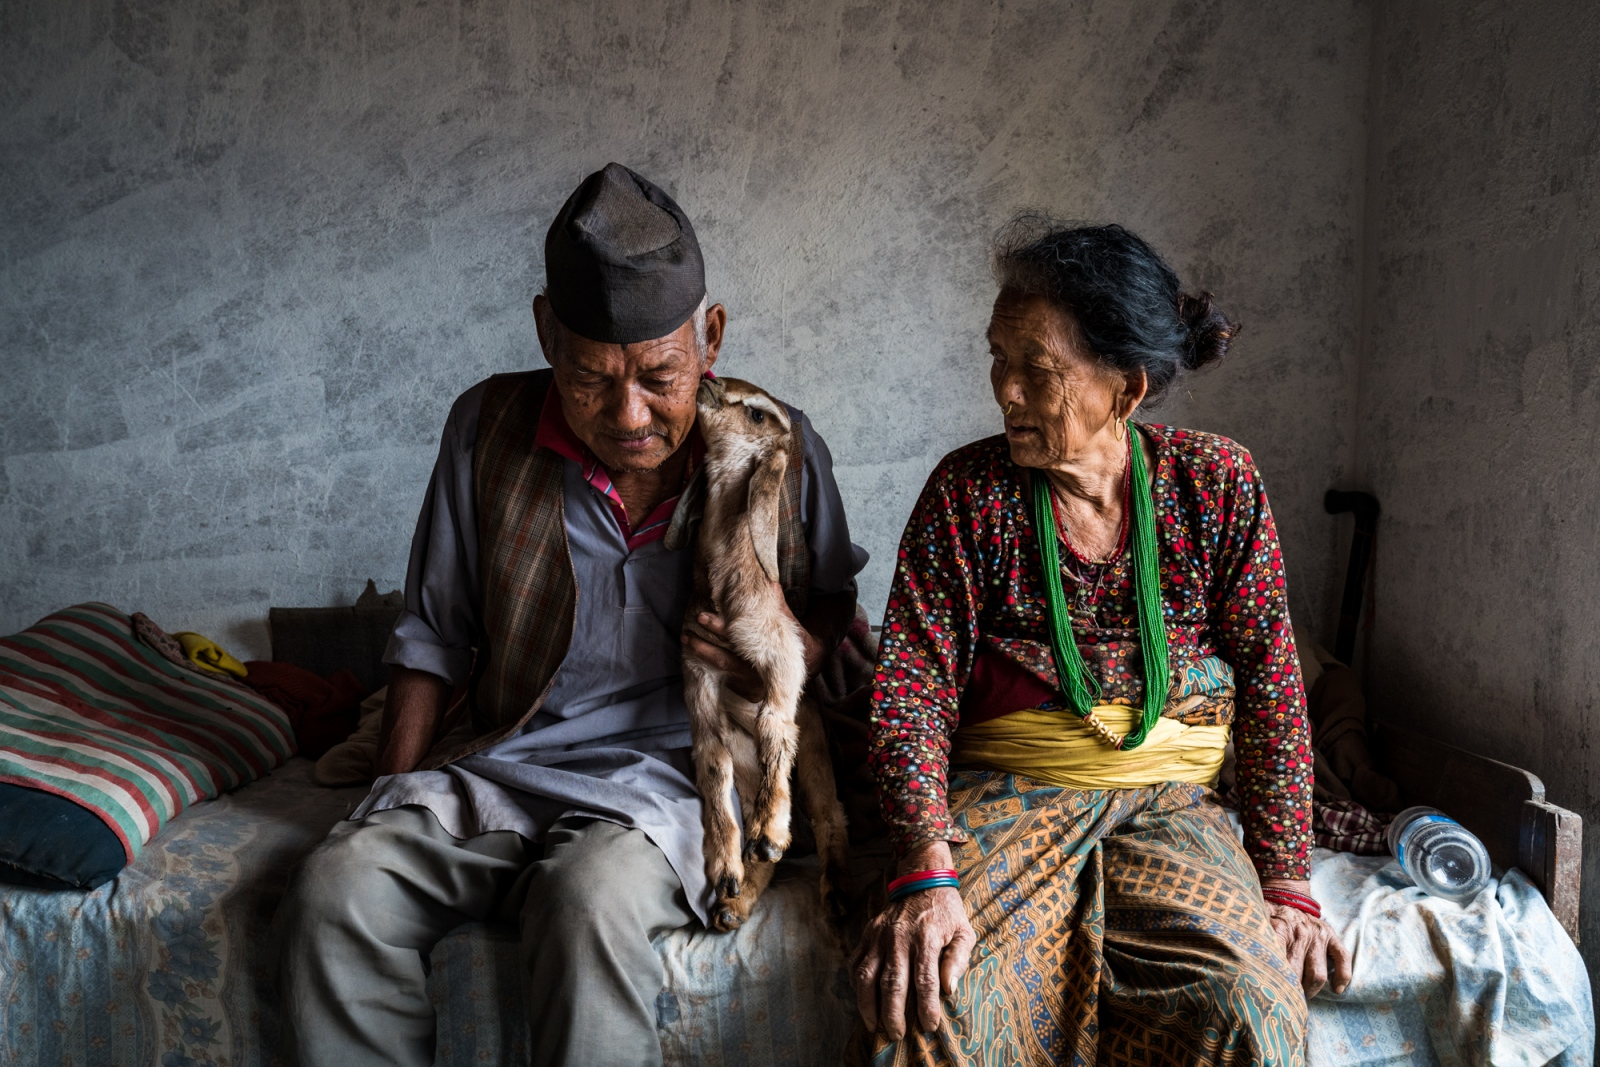 Babulal Tamang, 82 and Myrani Tamang, 79 sit with their baby goat inside their home. Thurloparsel, Nepal.